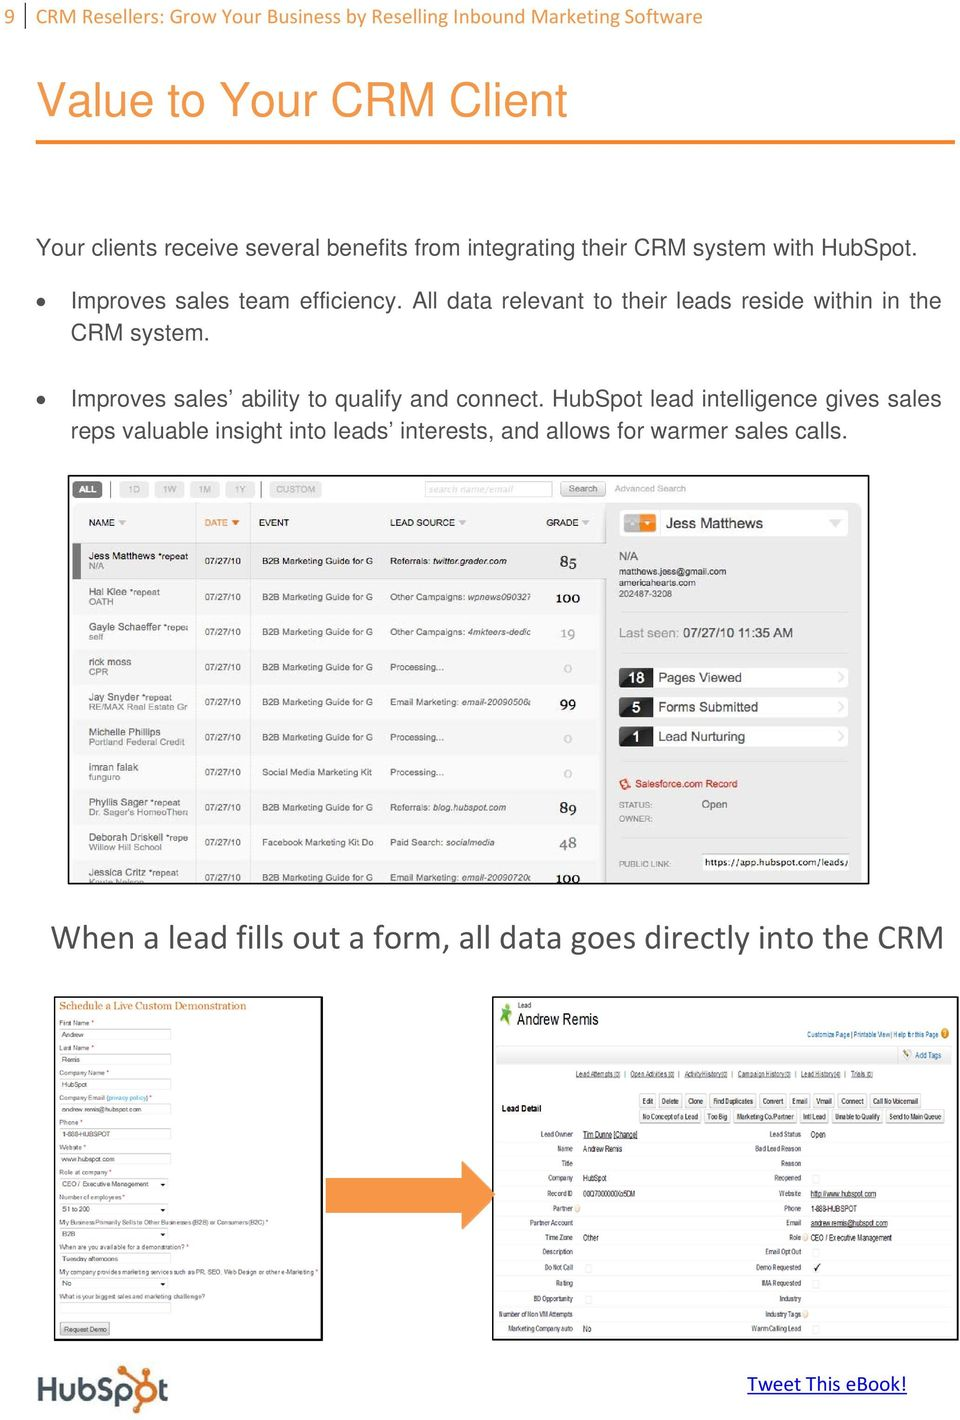 All data relevant to their leads reside within in the CRM system. Improves sales ability to qualify and connect.